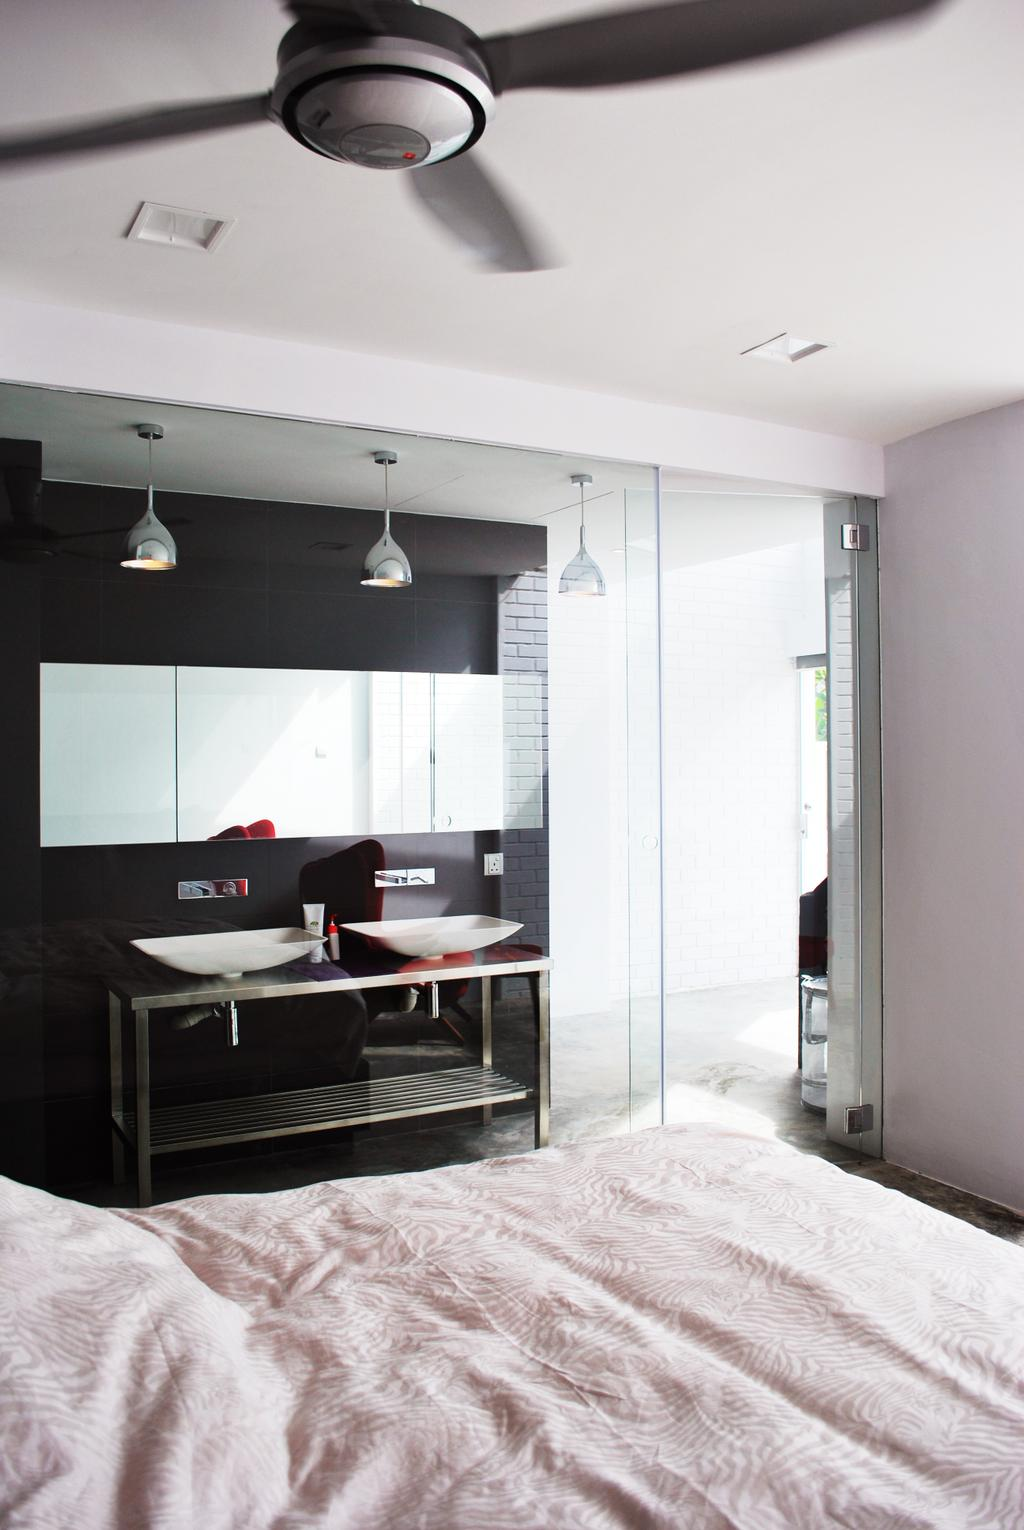 Transitional, Landed, Bedroom, Tagore Avenue, Architect, Czarl Architects, Chair, Furniture, Sink, Indoors, Interior Design, Dining Table, Table